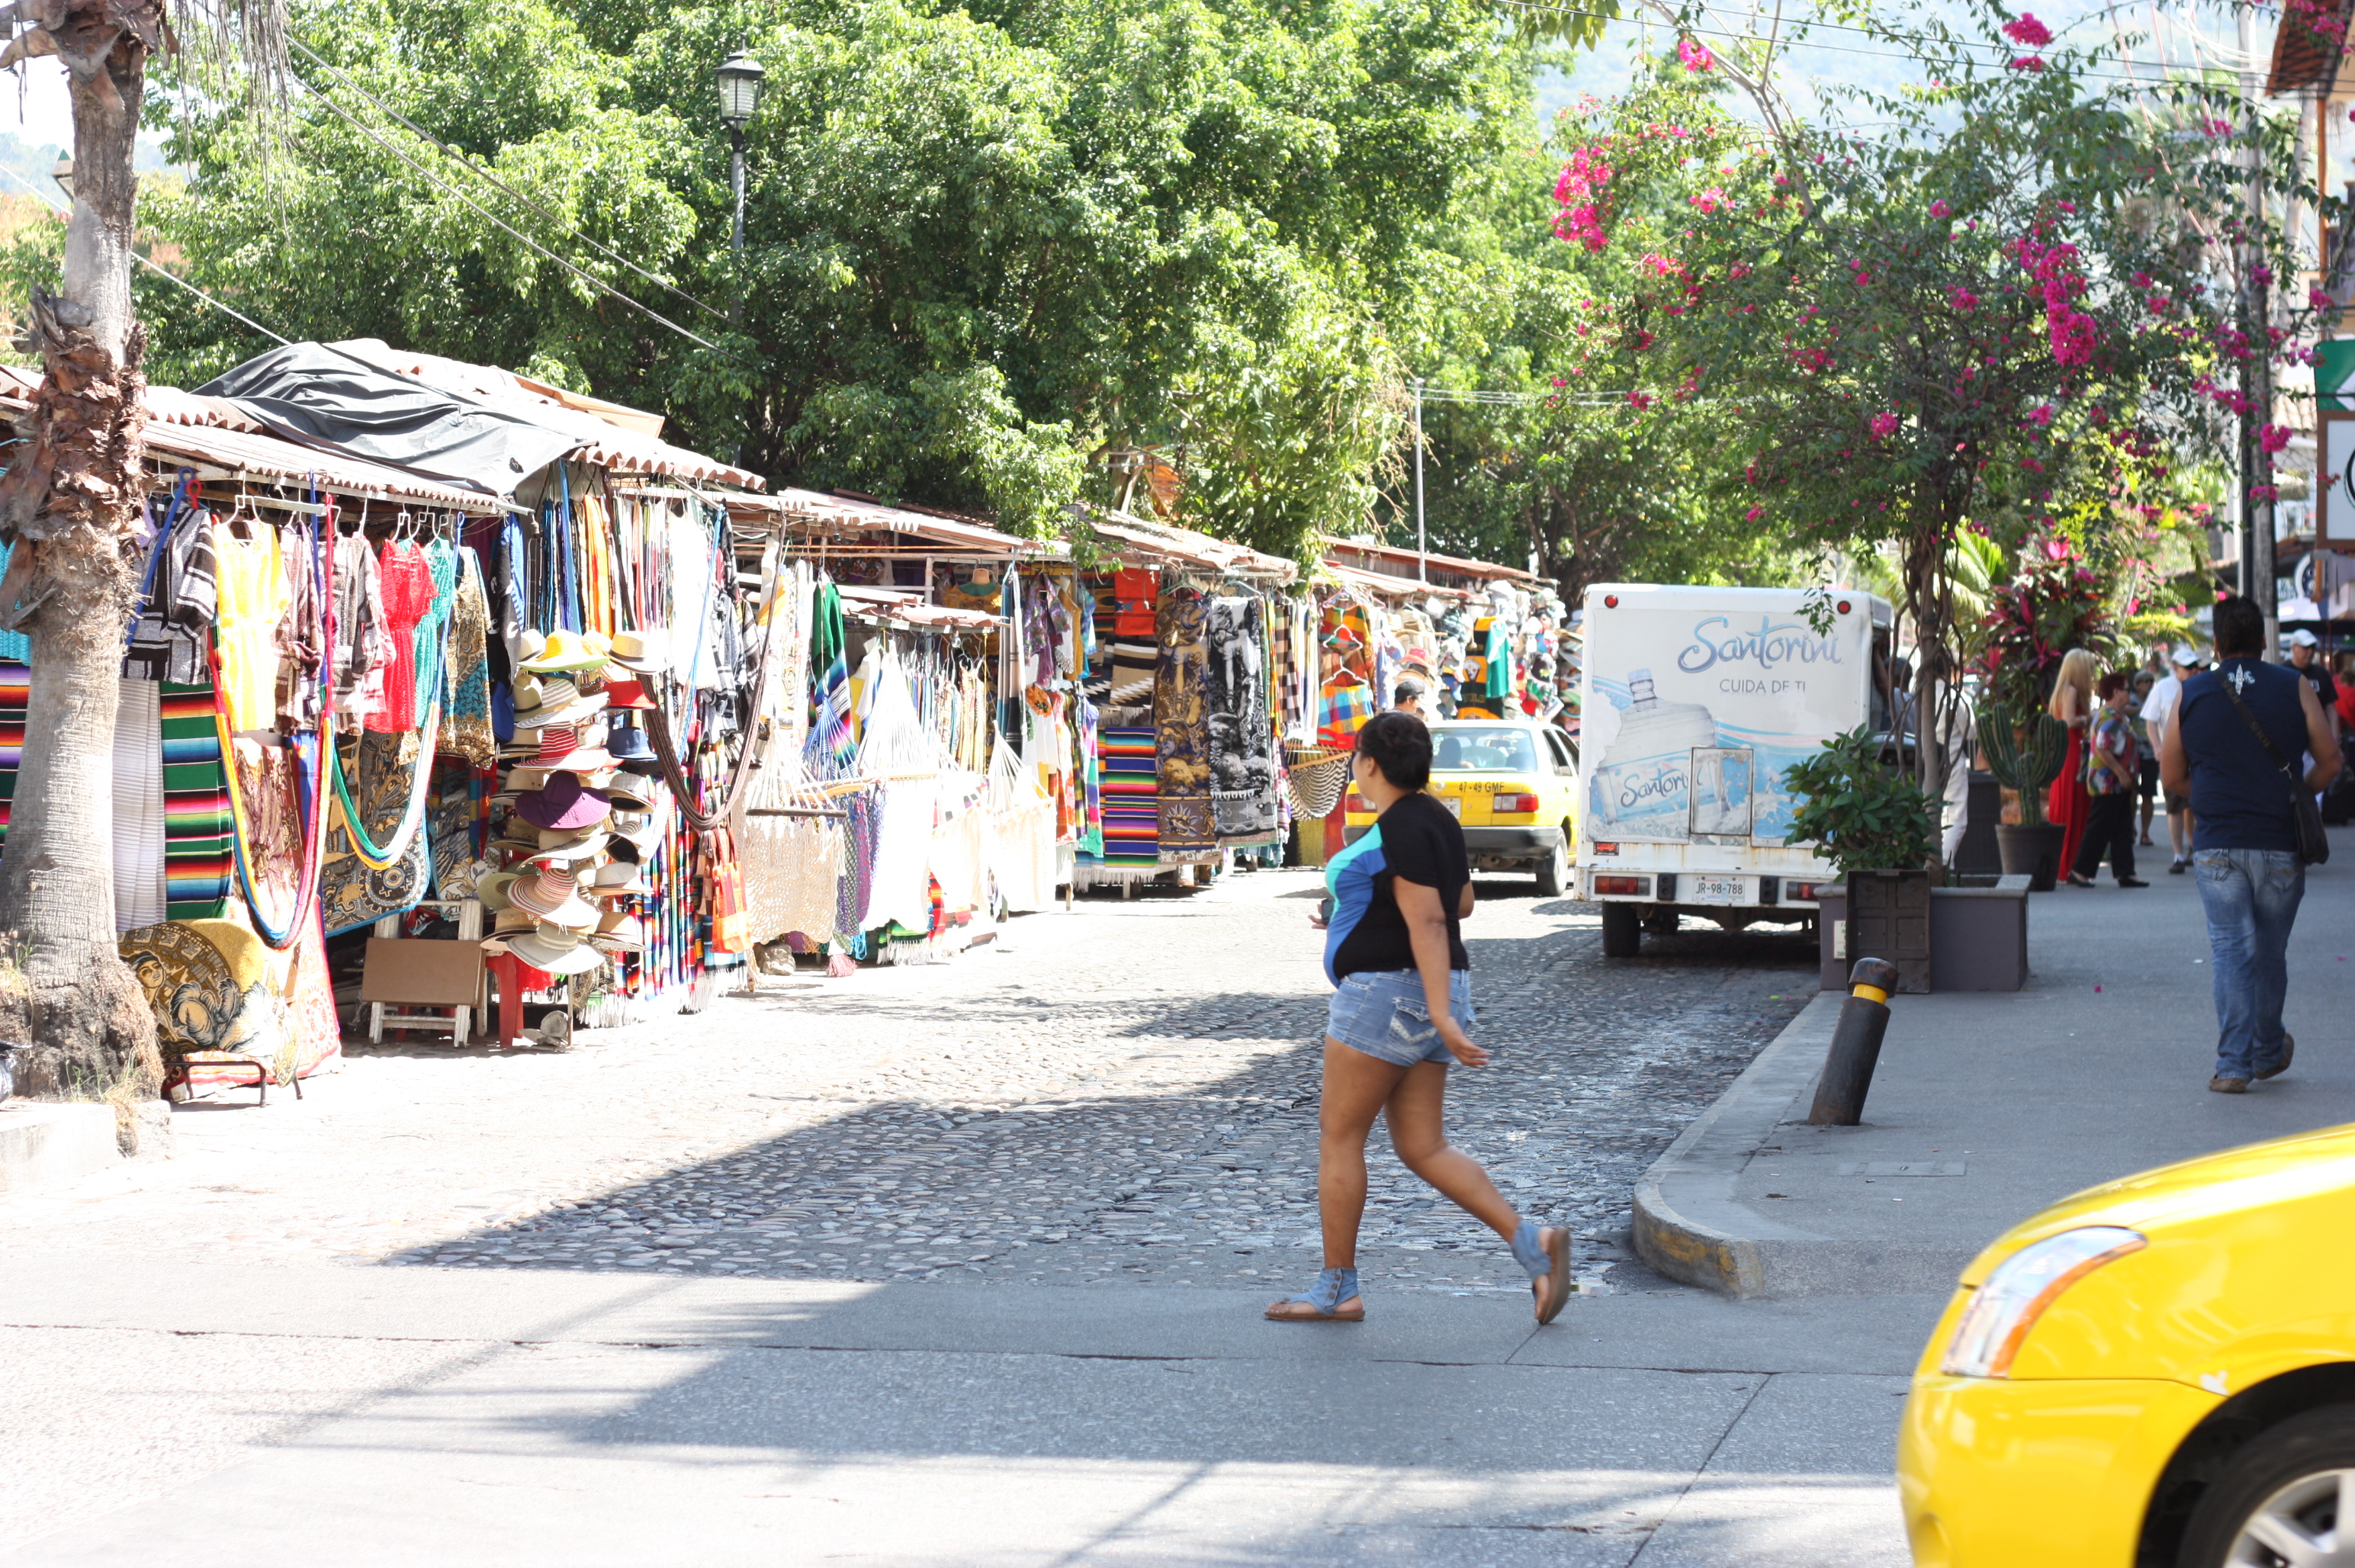 This side street is typical of the neighbourhood: vendors, restaurants, stores. Colourful. The spicy, aromatic smell of Mexican food, a blend of music and voices--a feast for the eyes, the ears and the nose for sure!